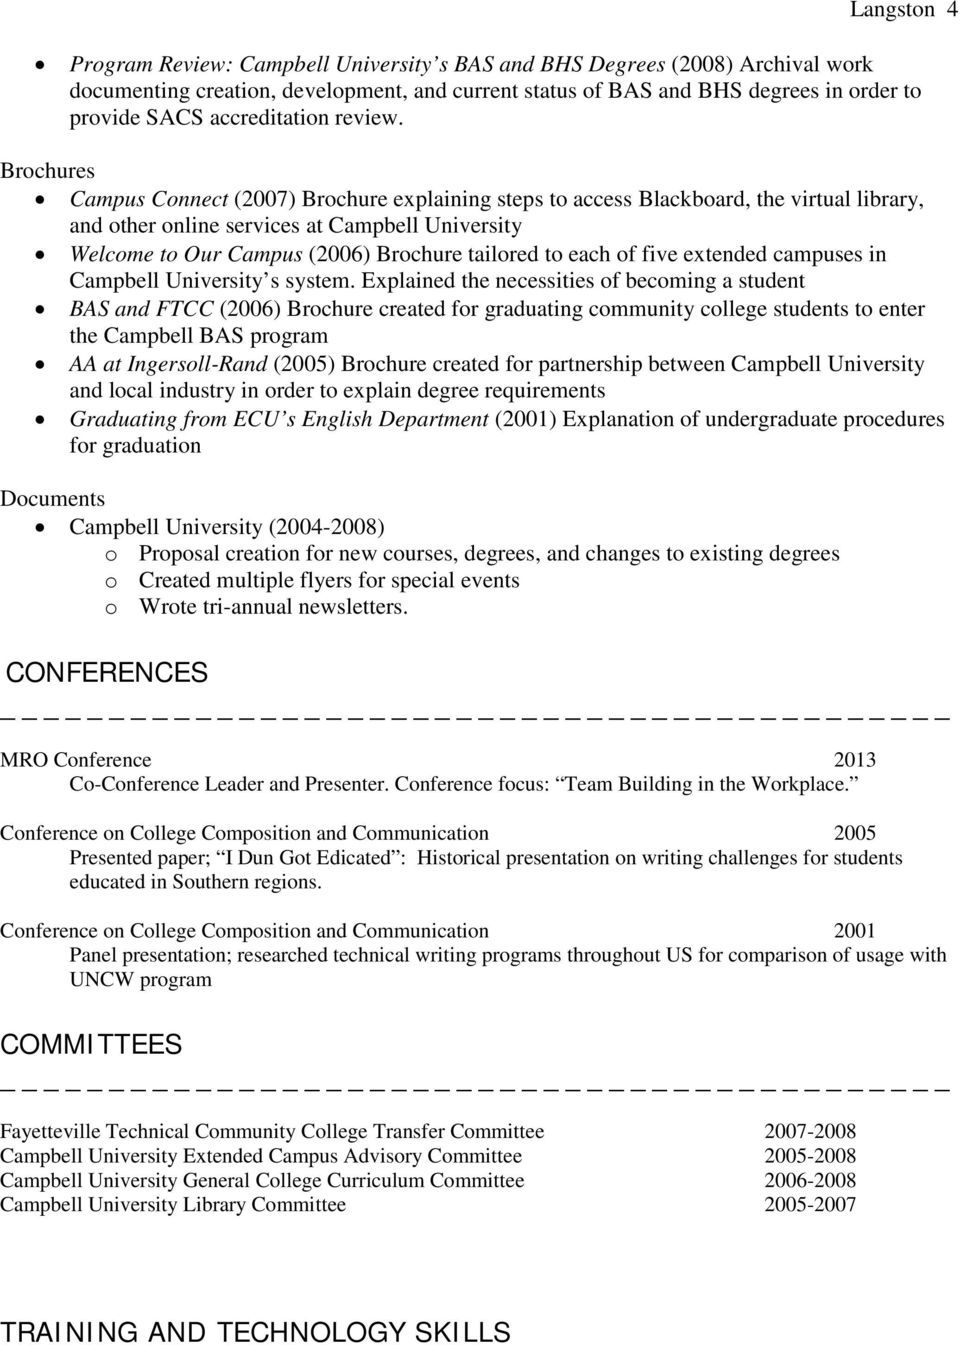 Brochures Campus Connect (2007) Brochure explaining steps to access Blackboard, the virtual library, and other online services at Campbell University Welcome to Our Campus (2006) Brochure tailored to